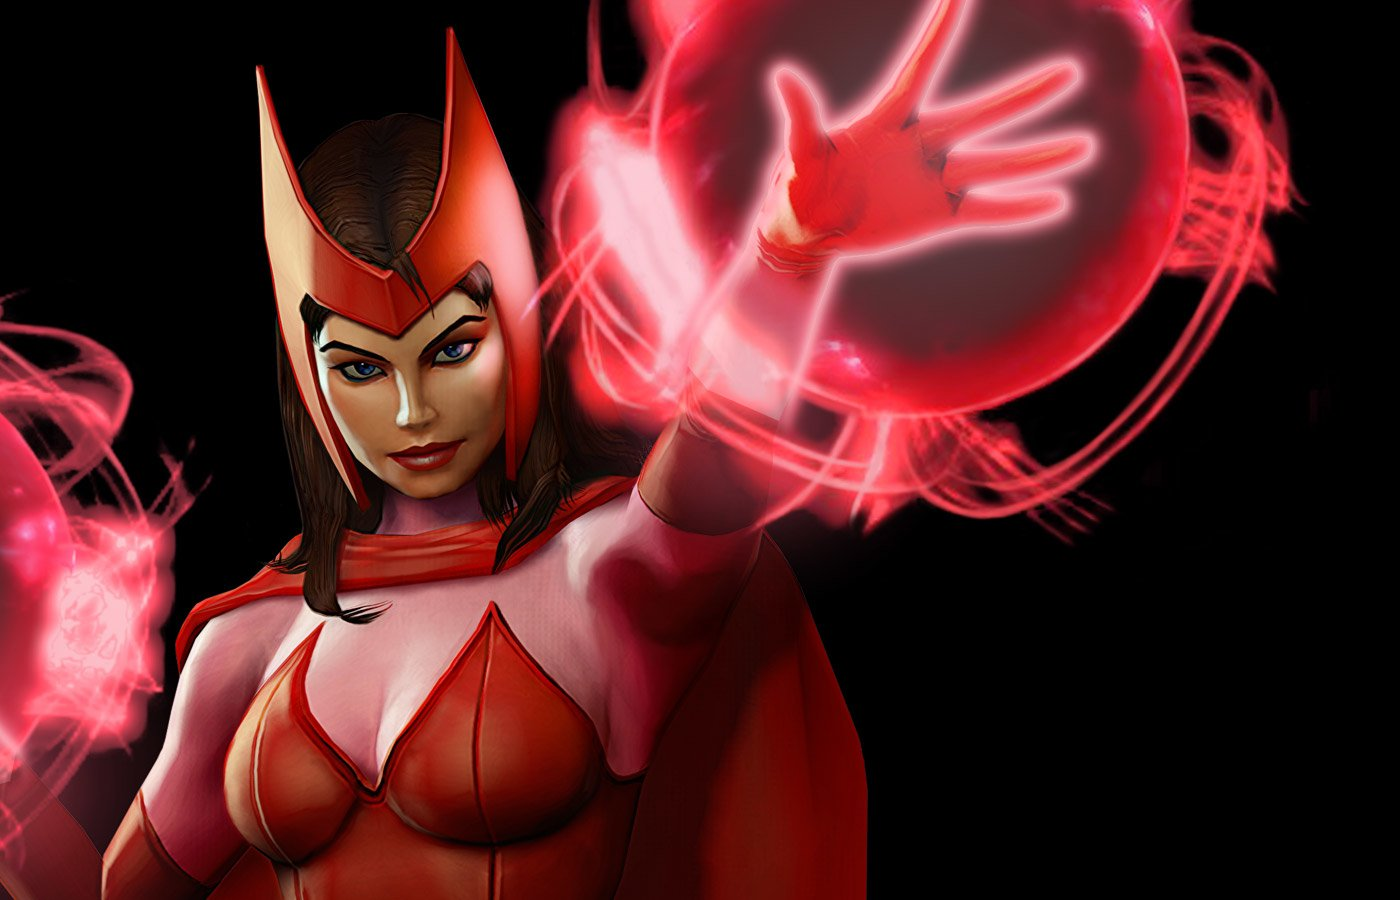 X Men Animated Series Wallpaper Scarlet Witch Wallpaper And Background Image 1400x900